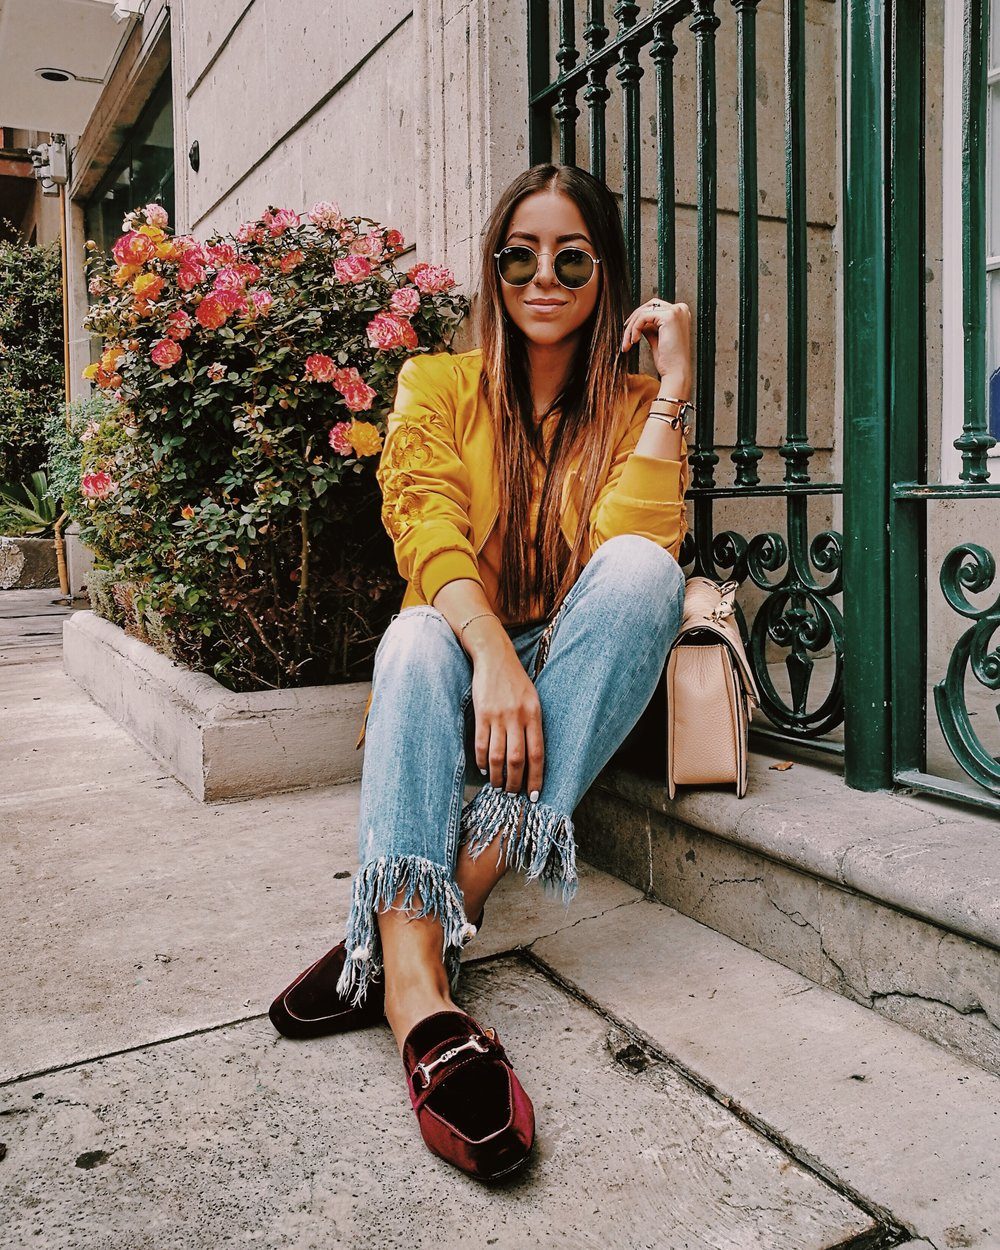 VELVET-LOAFFERS-YELLOW-BOMBER-JACKET-OUTFIT